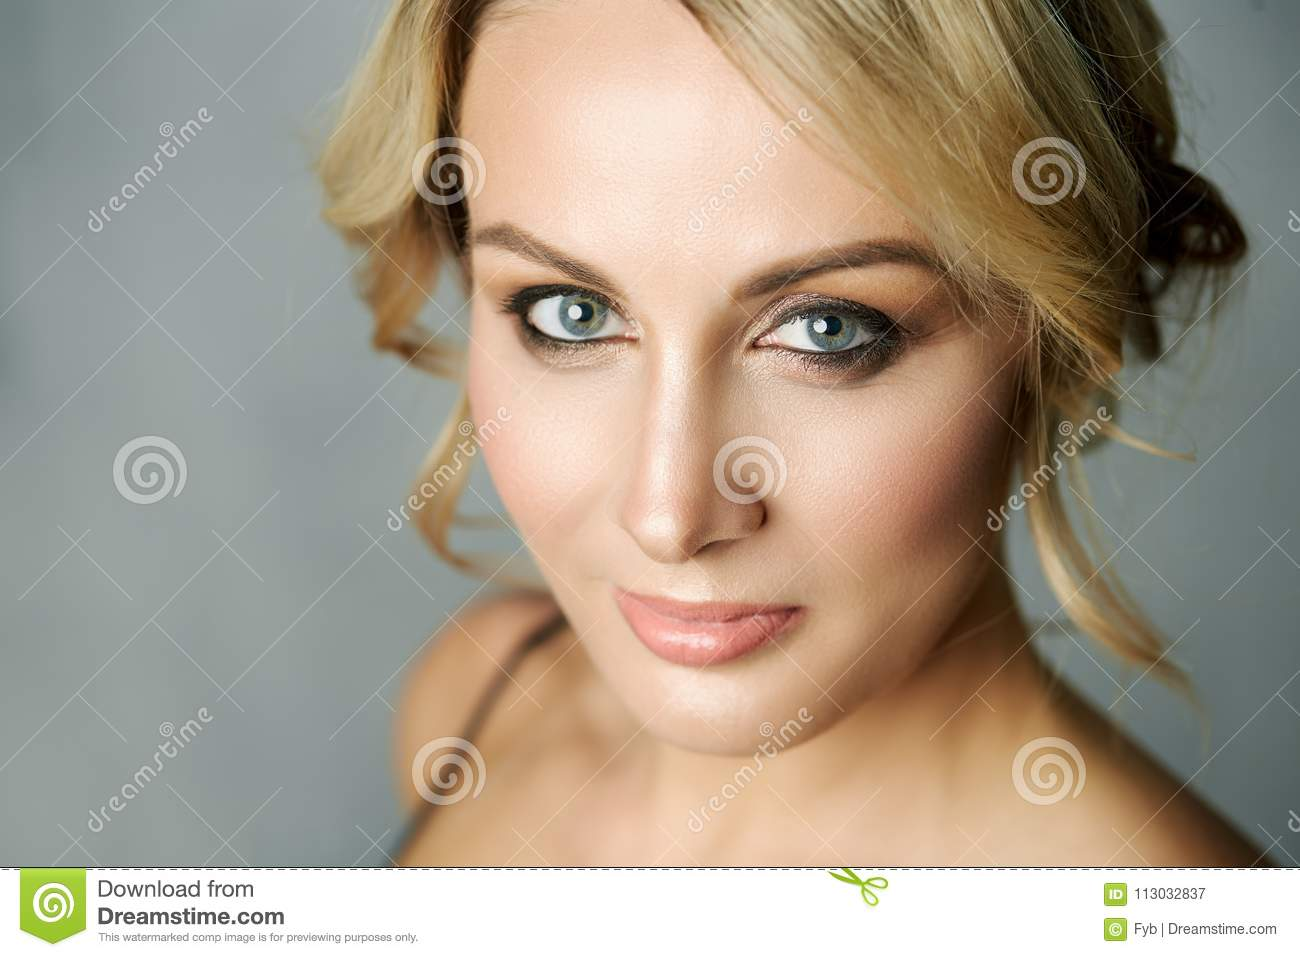 Close up portrait of a beautiful middle age woman